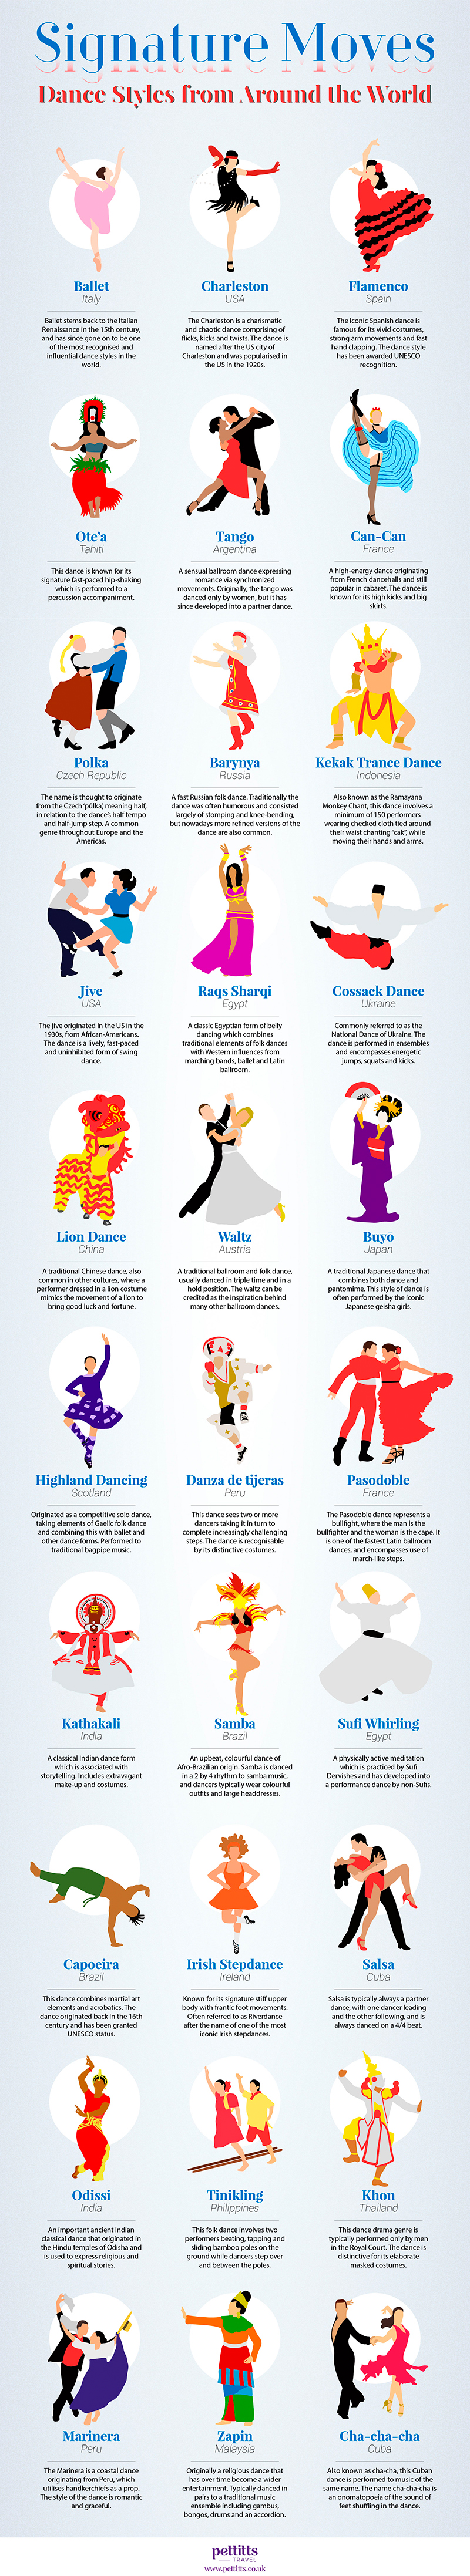 A Metaphor for Cultures and Emotions: Celebrating Different Dance Styles - Infographic